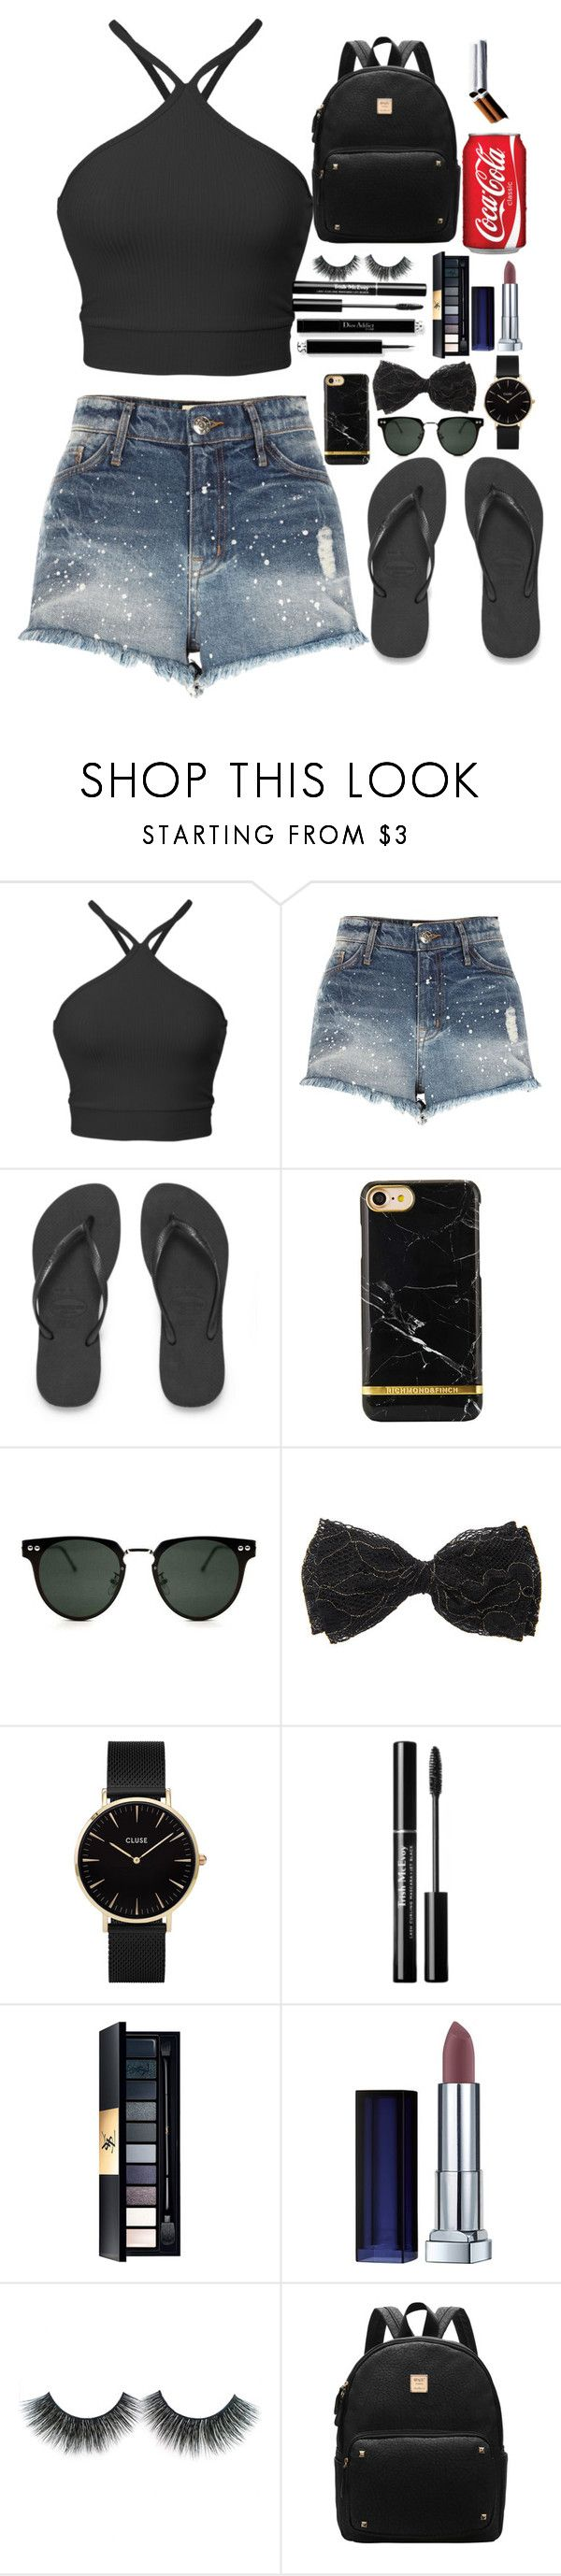 """""""buen día <3 follow me"""" by marii-96-1 ❤ liked on Polyvore featuring River Island, Havaianas, Spitfire, CLUSE and Maybelline"""